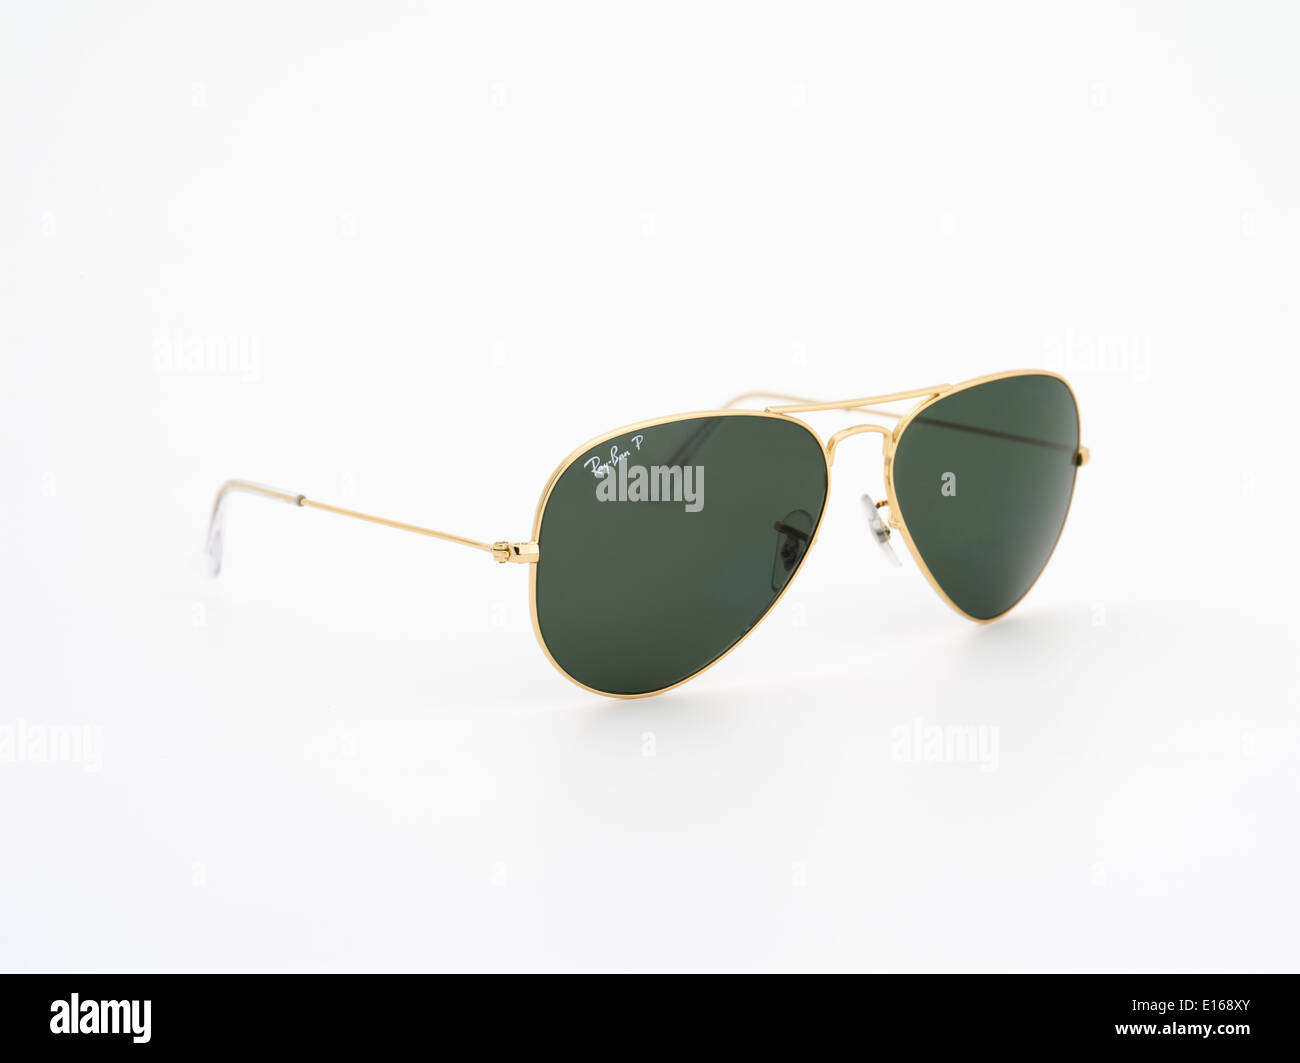 Ray-ban Aviator iconic sunglasses. Invented 1937 for US Air Force. Polarized lenses, luxotica - Stock Image